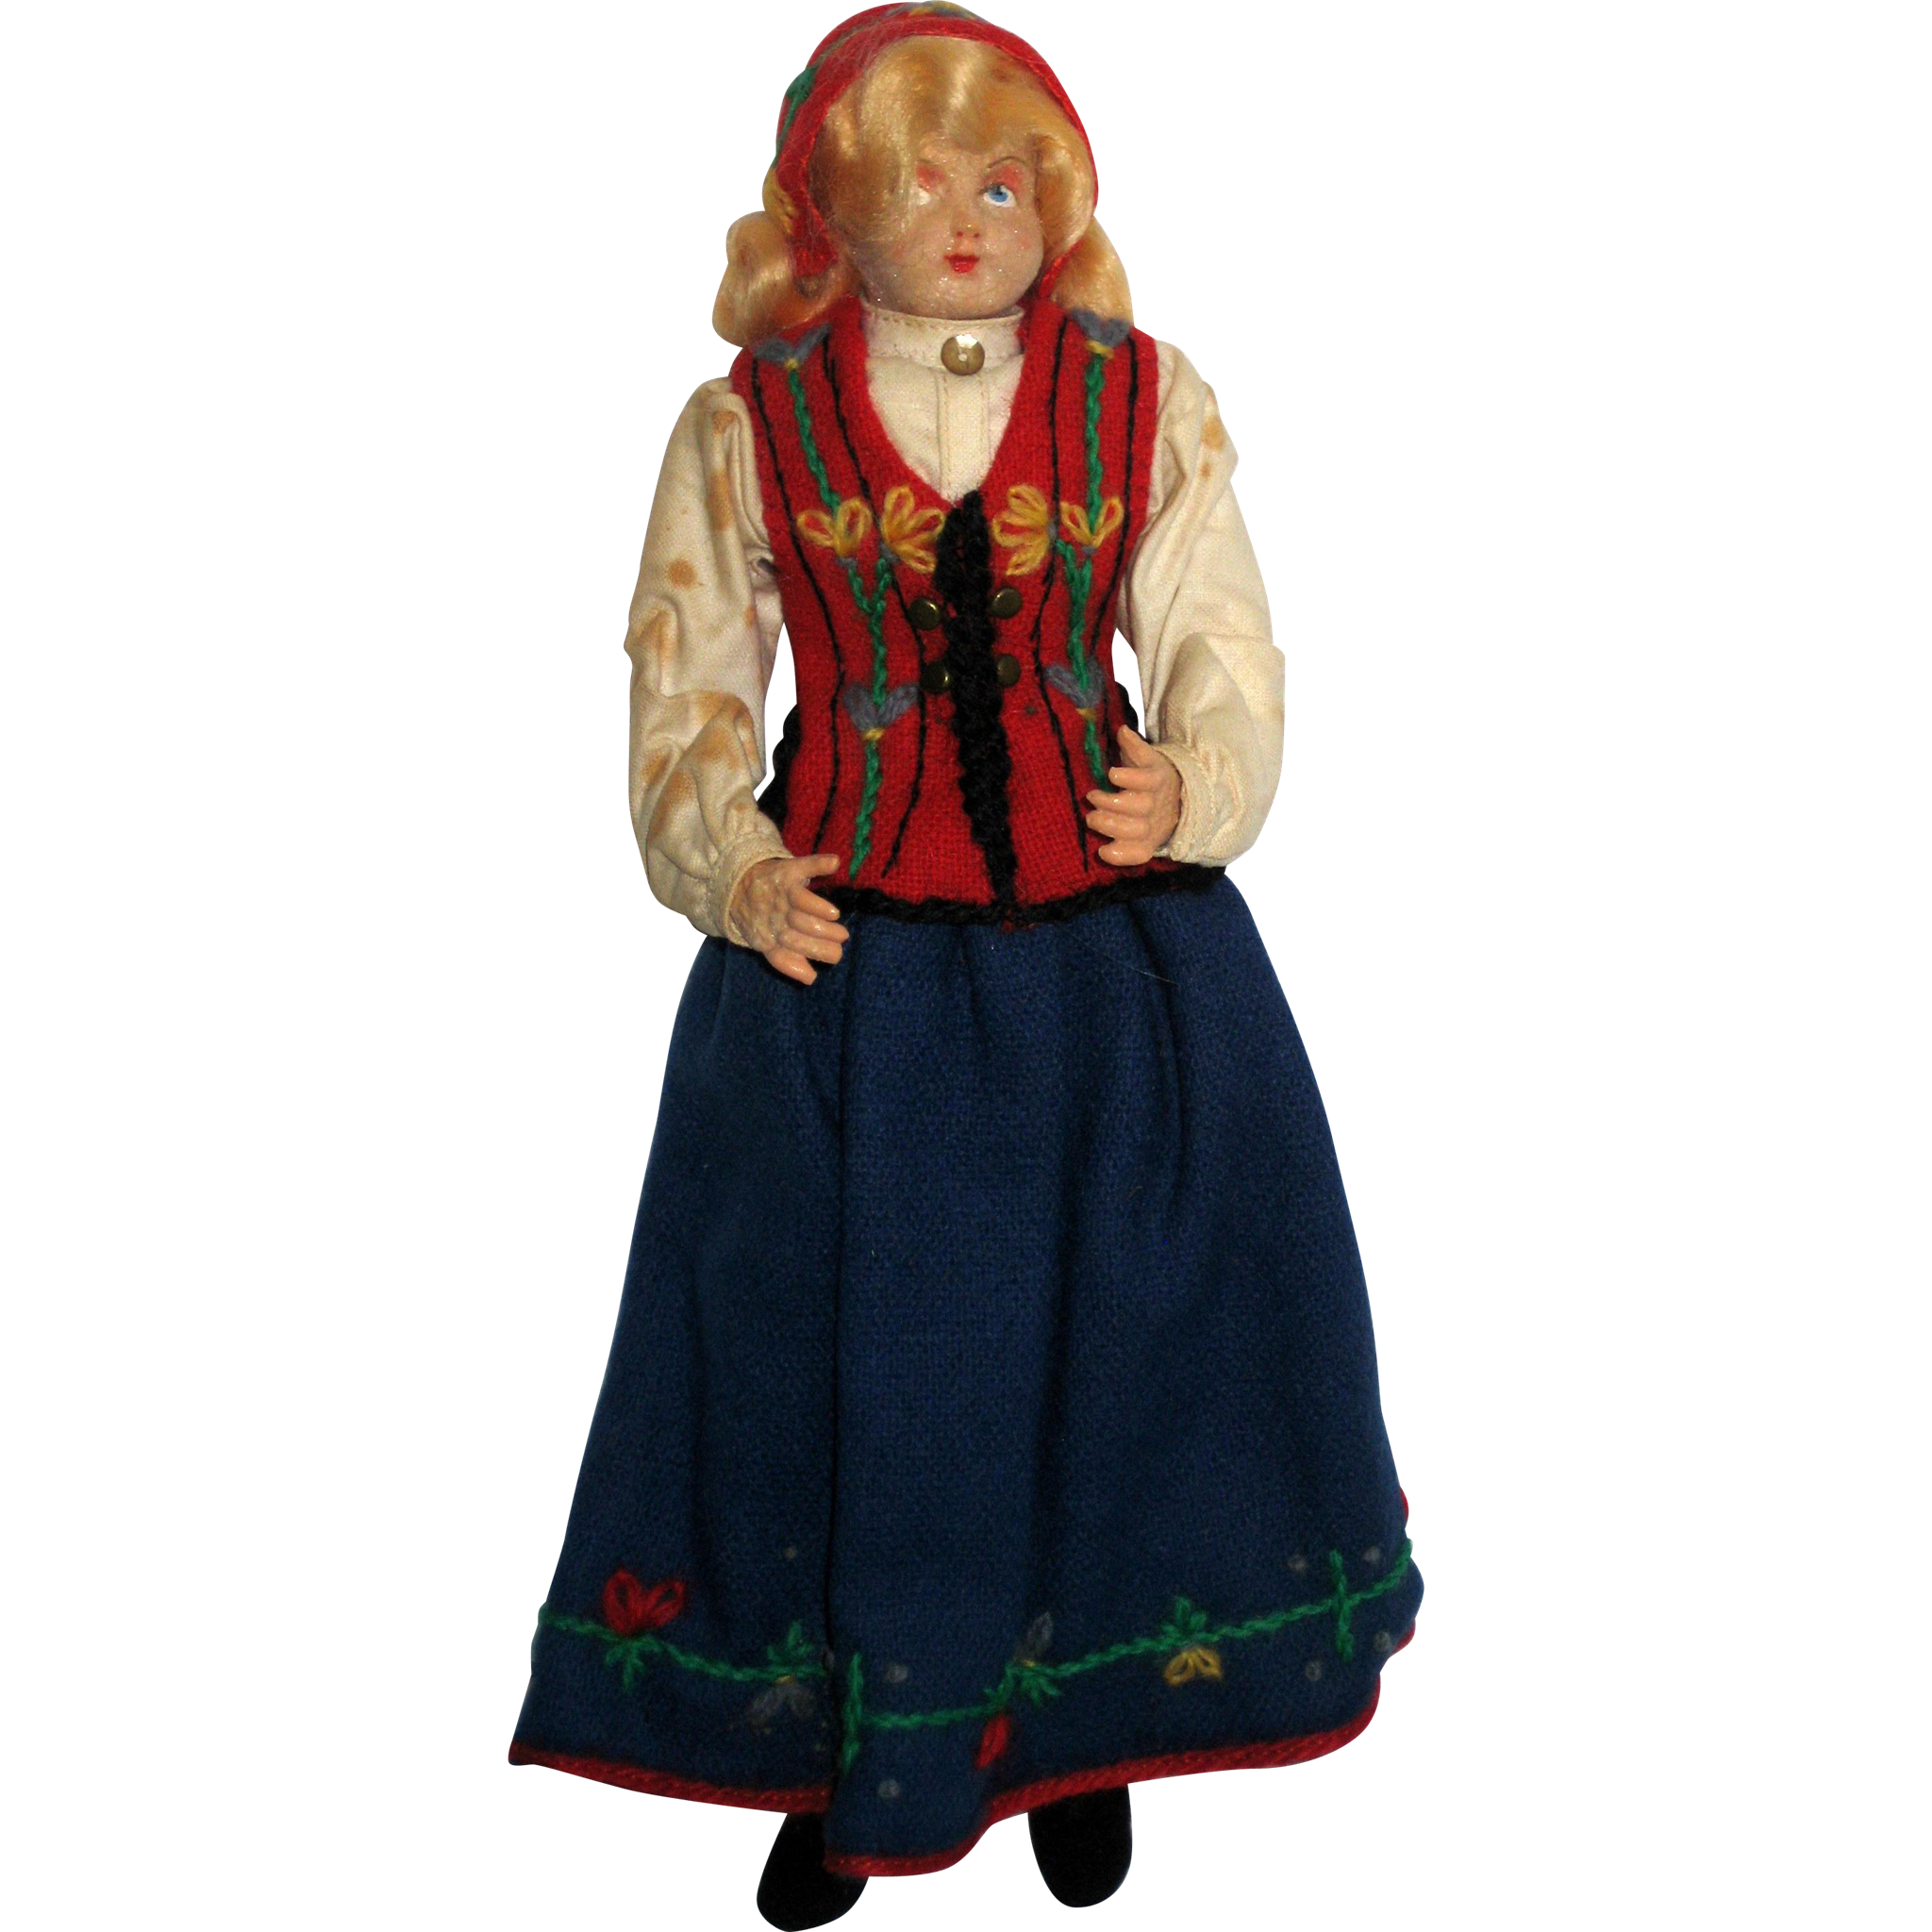 Hilda Ege Norwegian Ethnic Costume Doll - 1940's